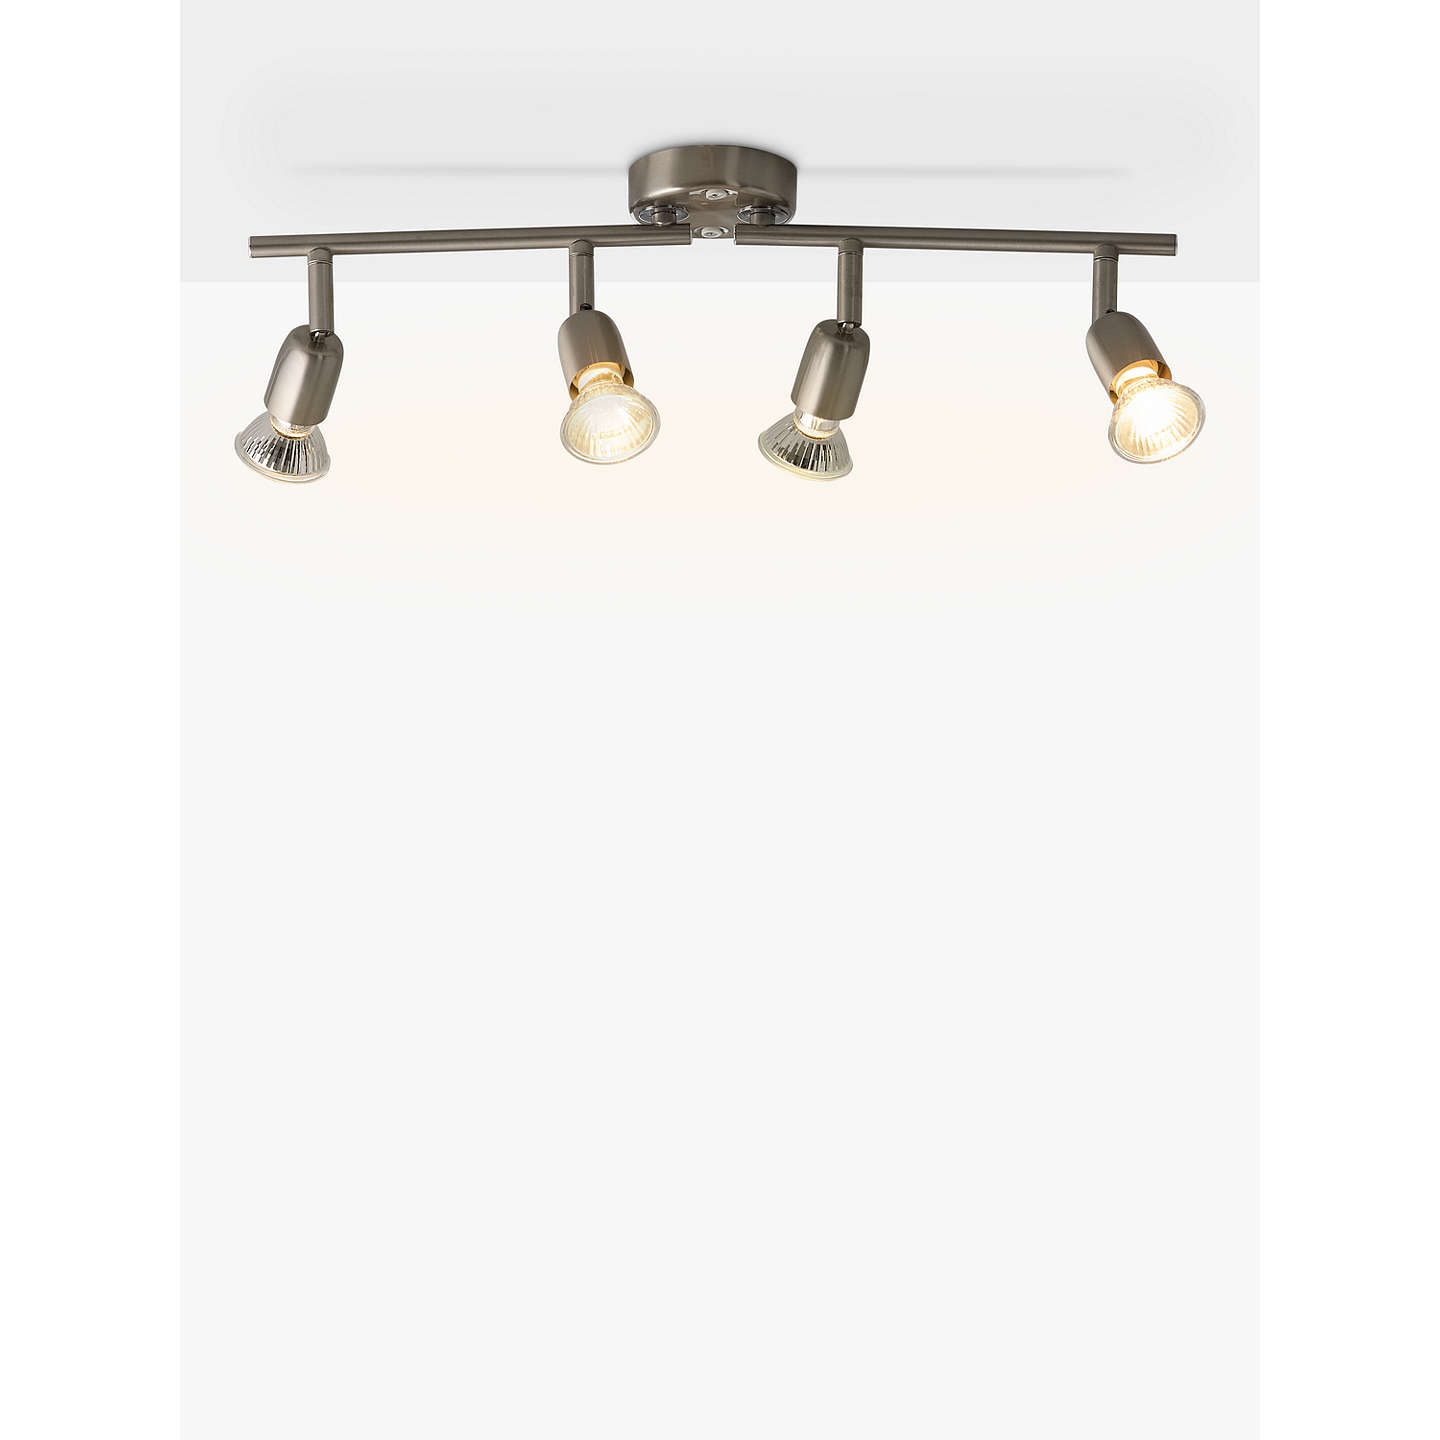 House by john lewis 4 spotlight ceiling bar brushed chrome at john buyhouse by john lewis 4 spotlight ceiling bar brushed chrome online at johnlewis aloadofball Image collections